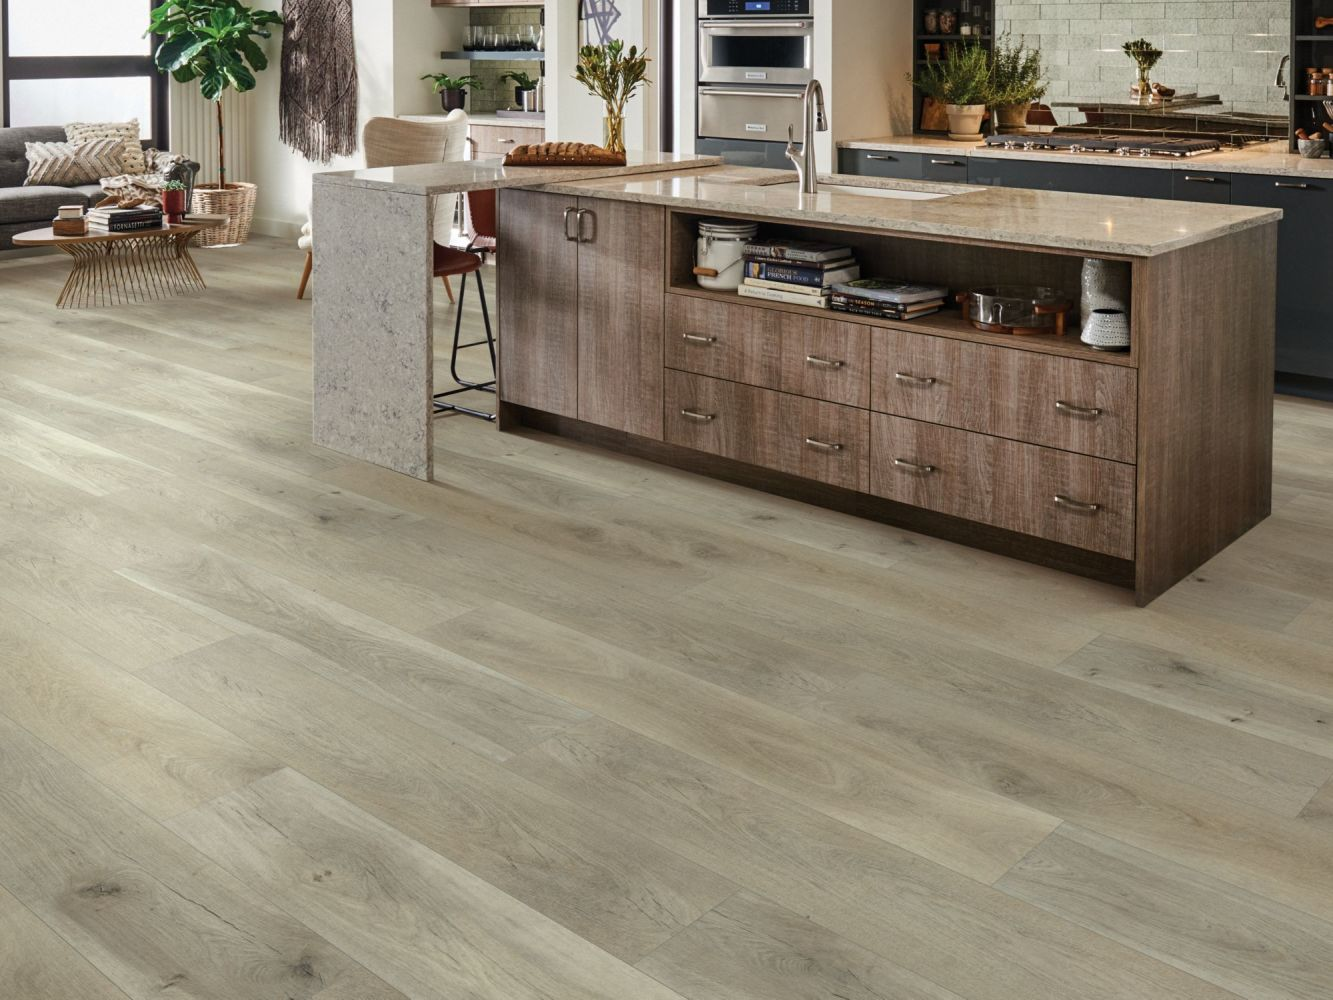 Shaw Floors SFA Adventure XL Hd+accent Cliffside 01043_700SA